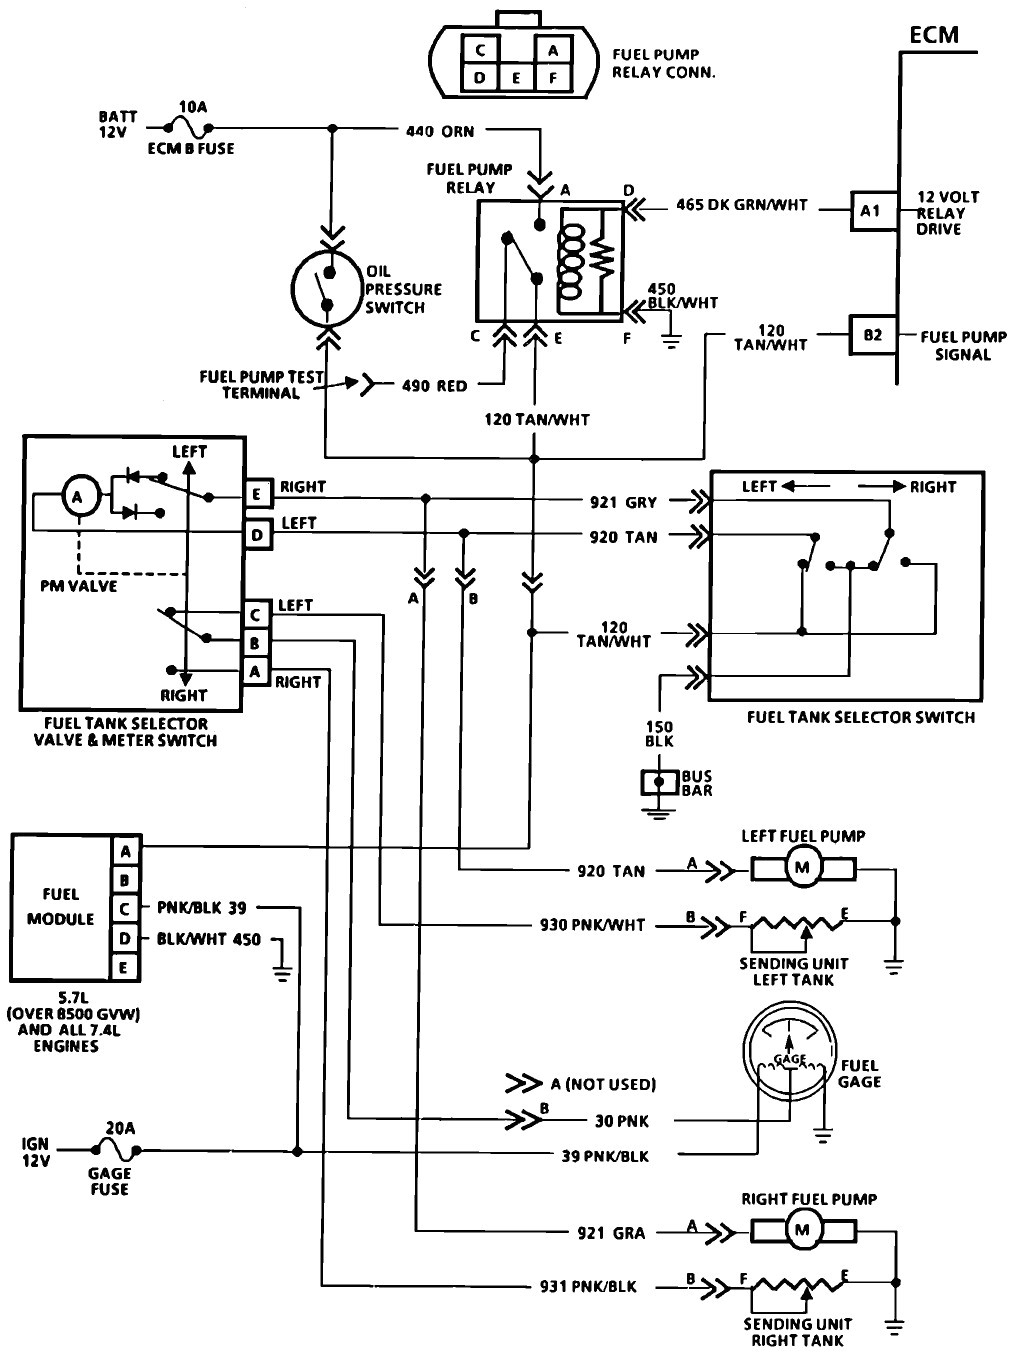 1989 chevy truck wiring diagram beautiful 1987 chevrolet fuel tank of dual switch 0 within dual fuel tank switch wiring gif